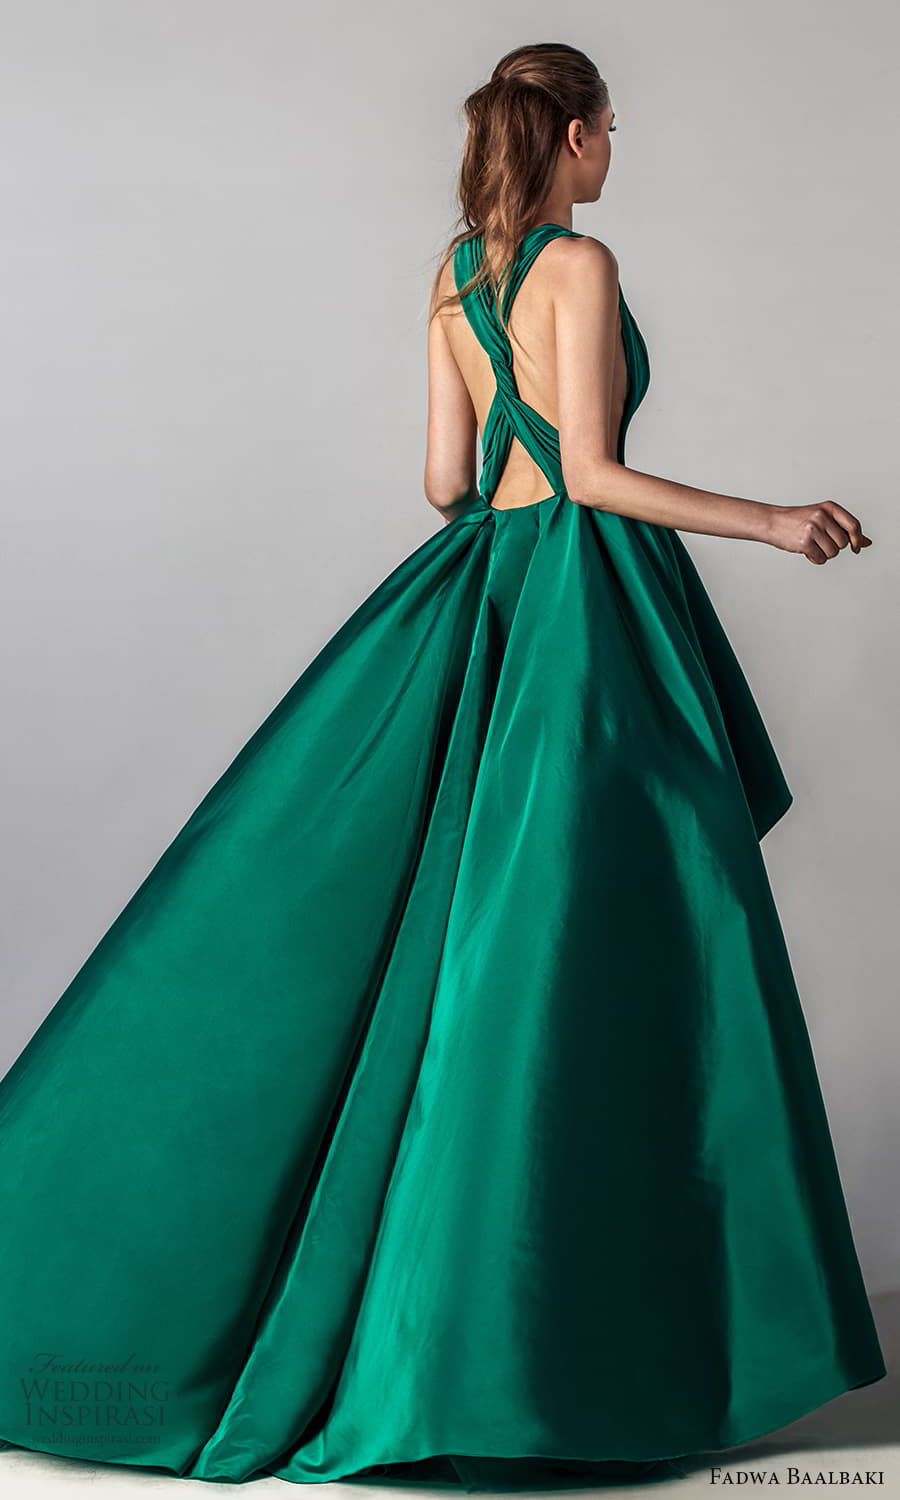 fadwa baalbaki spring 2021 bridal sleeveless thick halter straps plunging v neckline ruched bodice a line ball gown high low wedding dress chapel train green color (7) bv